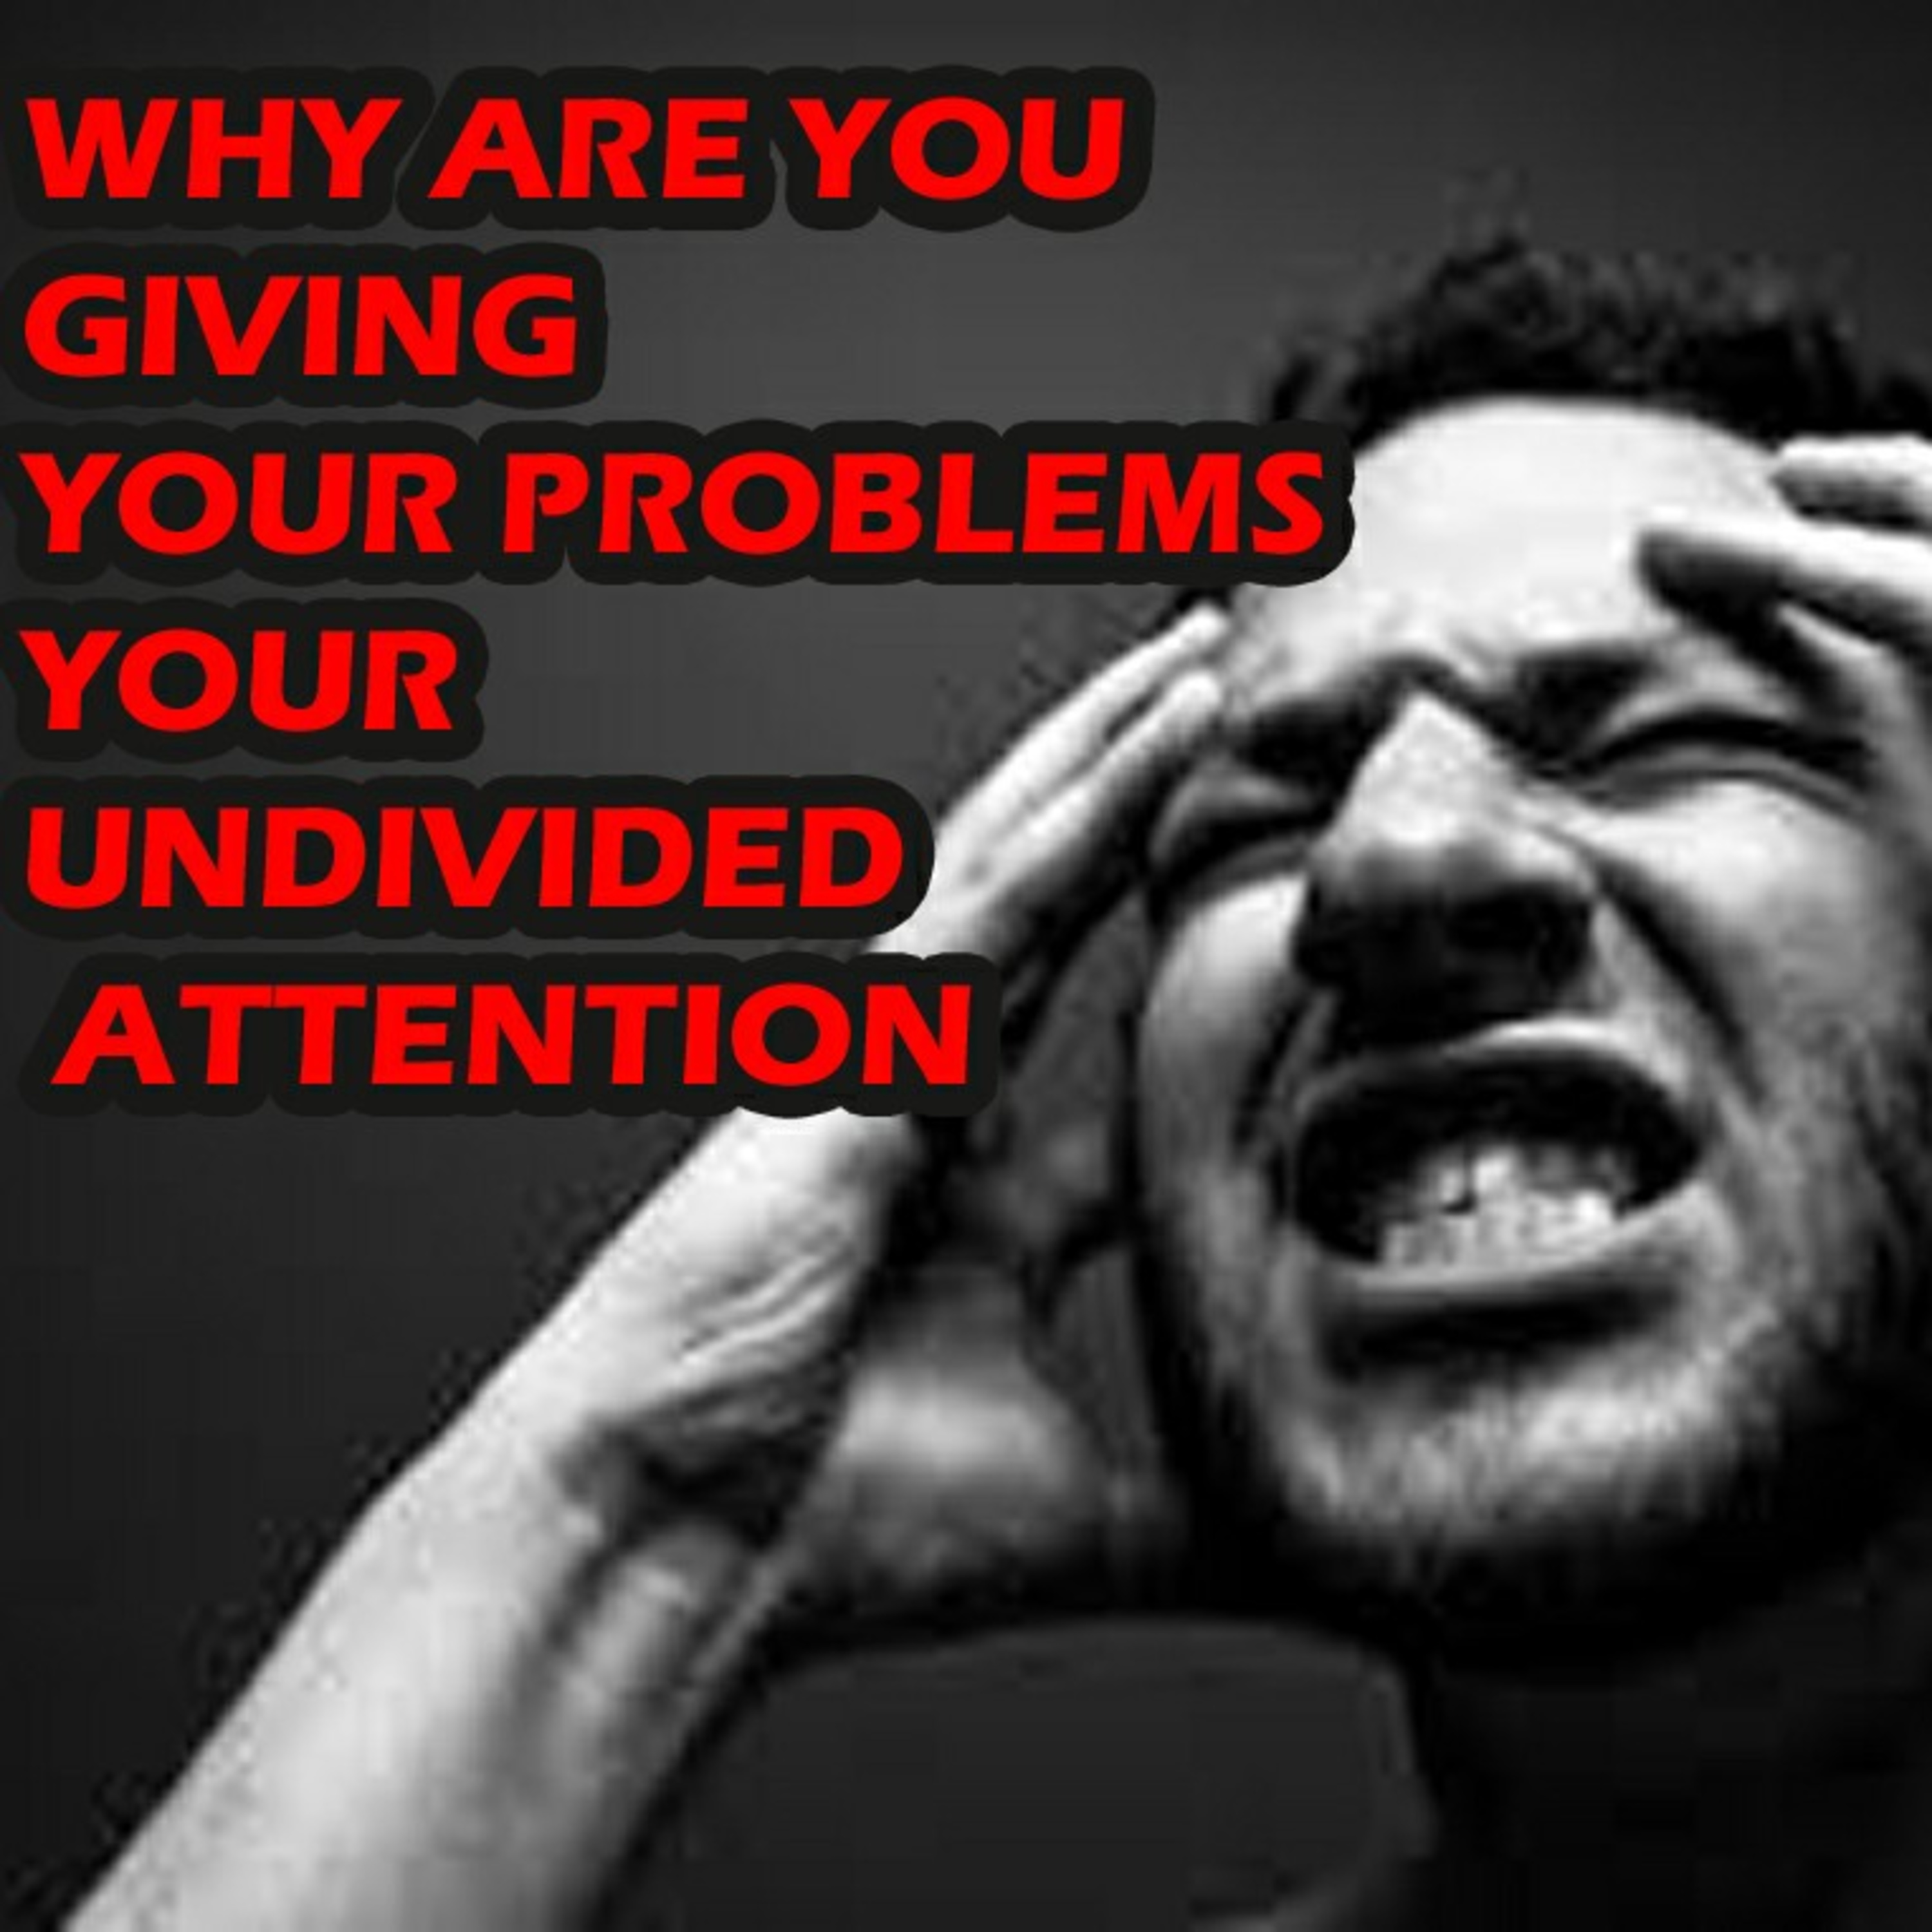 Why are you giving your problems your undivided attention?